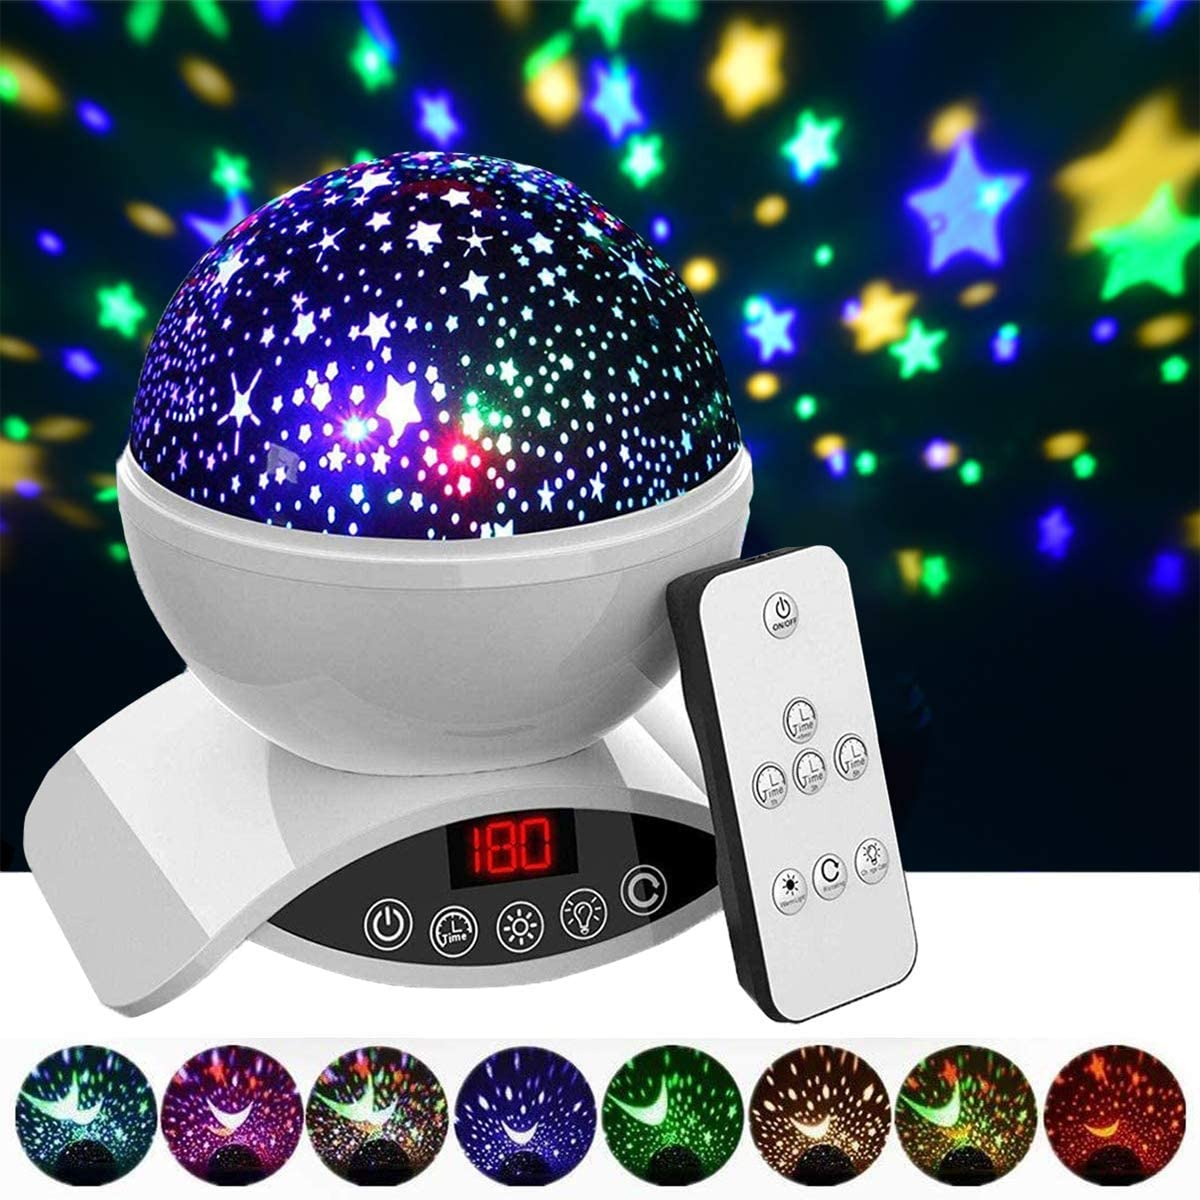 Aisuo Night Light, Rechargeable Star Lighting Lamp with Timer Design, Remote Control & Rotating, Color Changing, Room Decor. (White)